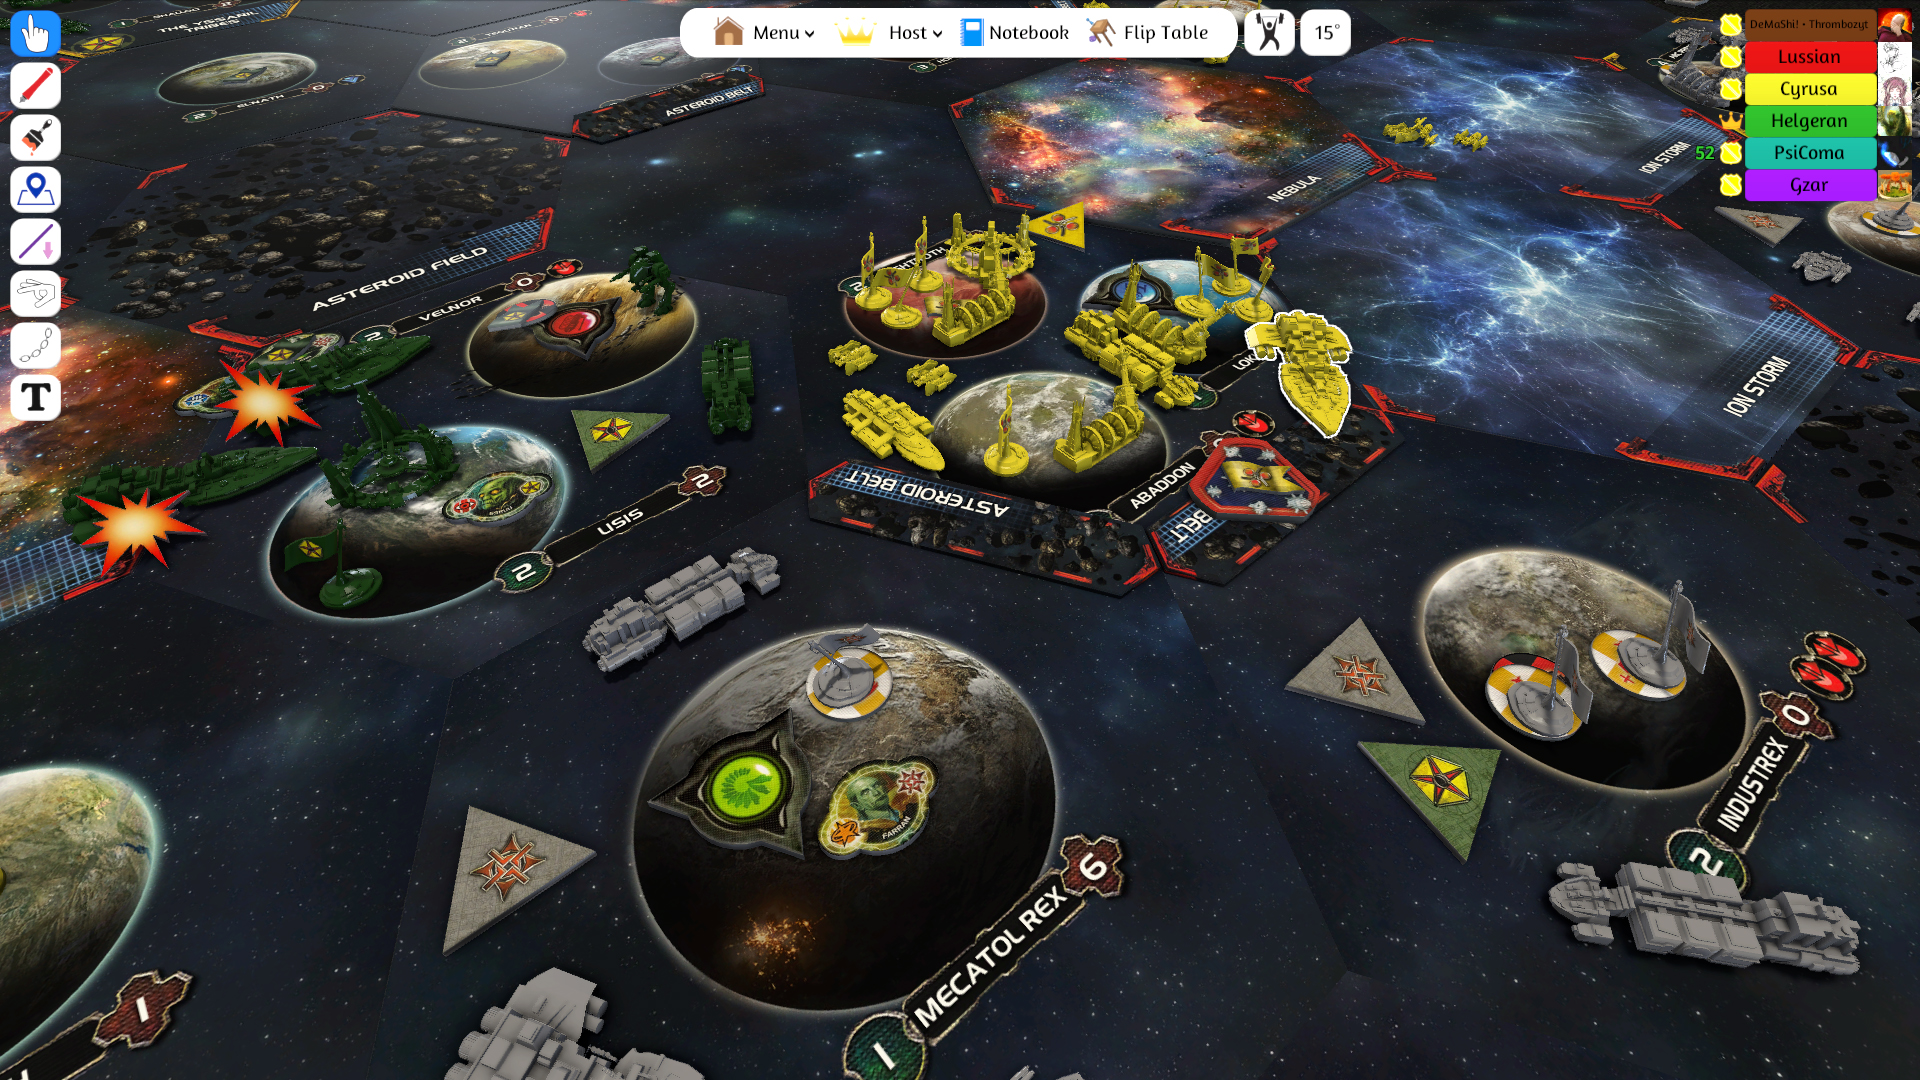 The best ways to play board games on PC